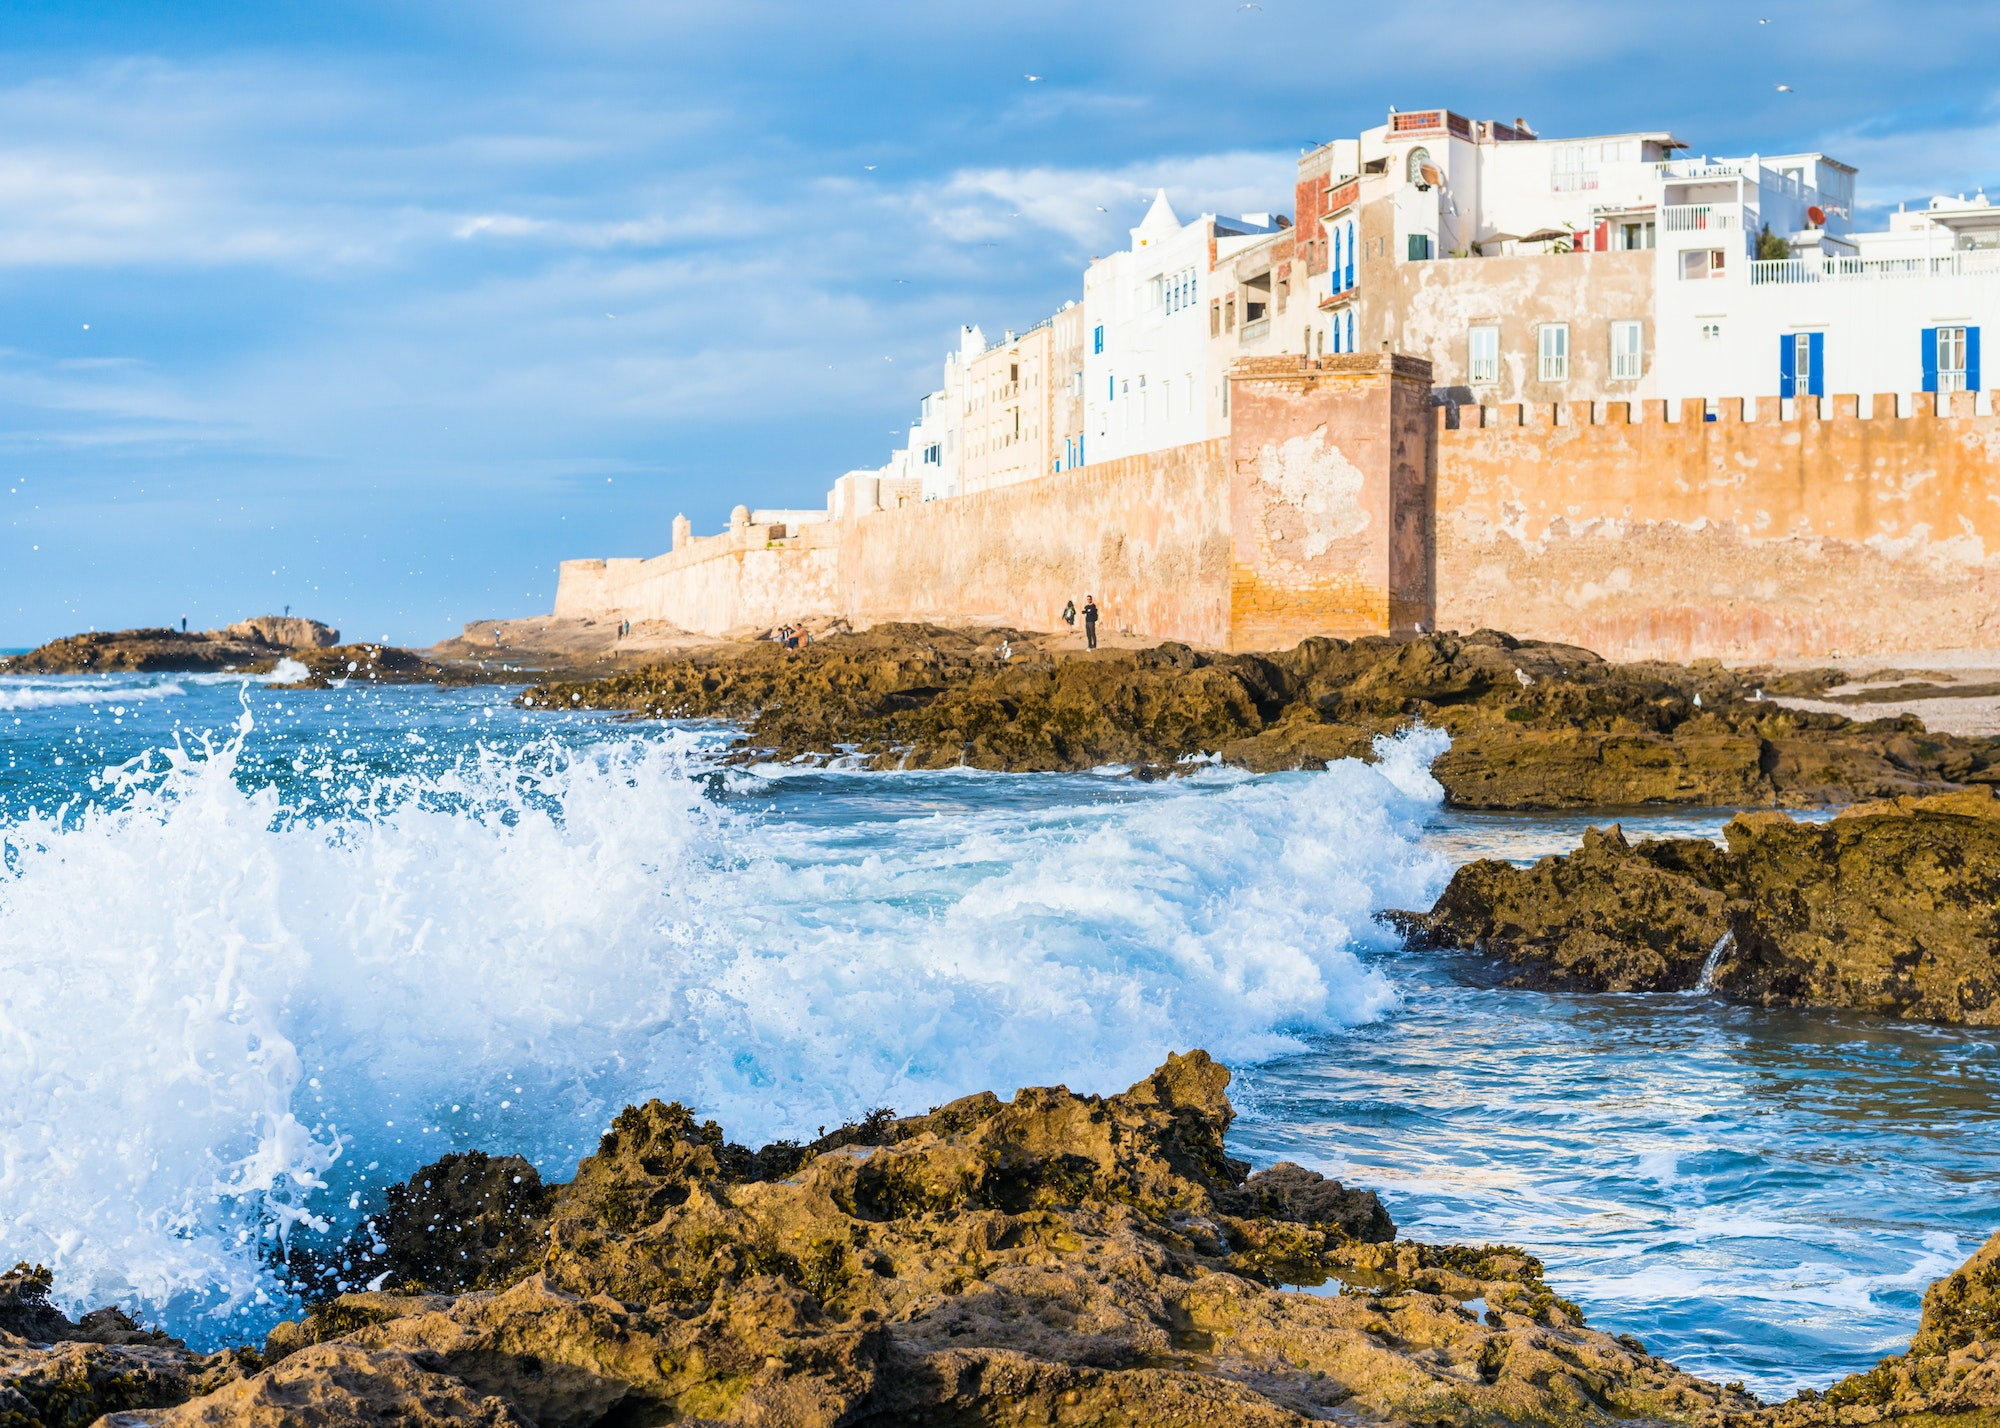 Essaouira's walled medina (formerly known as Mogador) is a UNESCO World Heritage site.